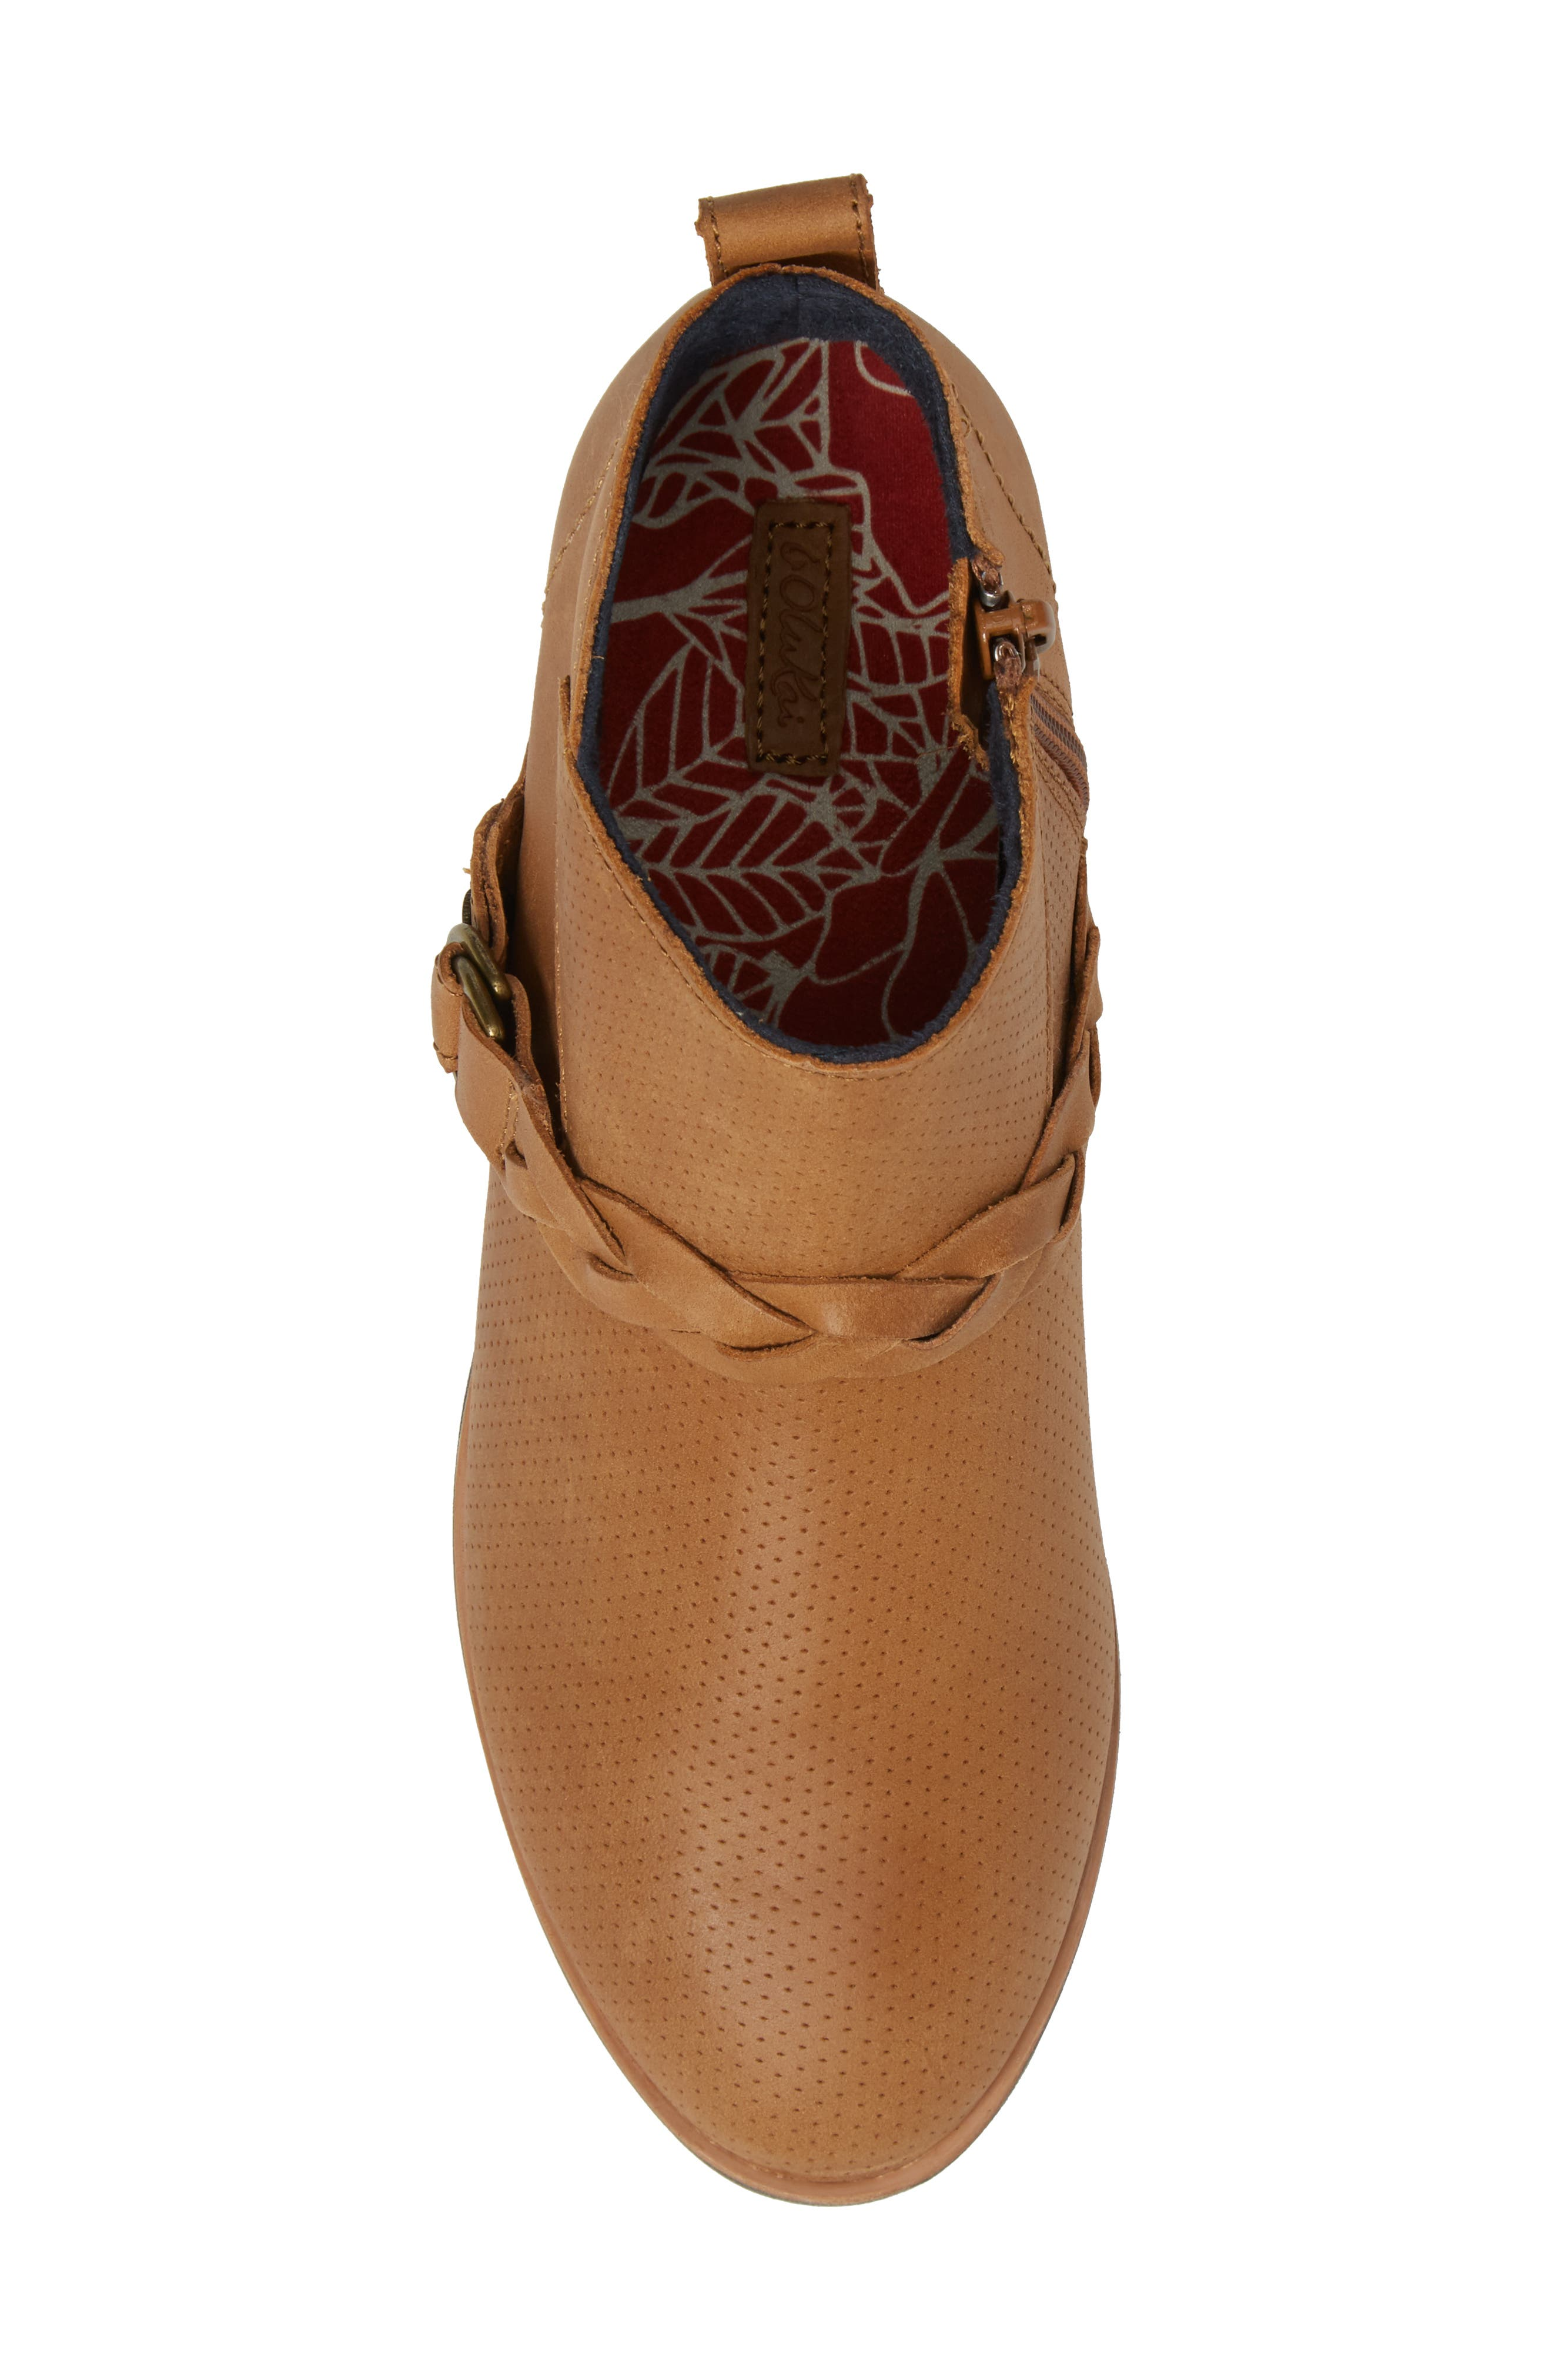 Ho'olu Perforated Bootie,                             Alternate thumbnail 5, color,                             Pecan/ Pecan Leather